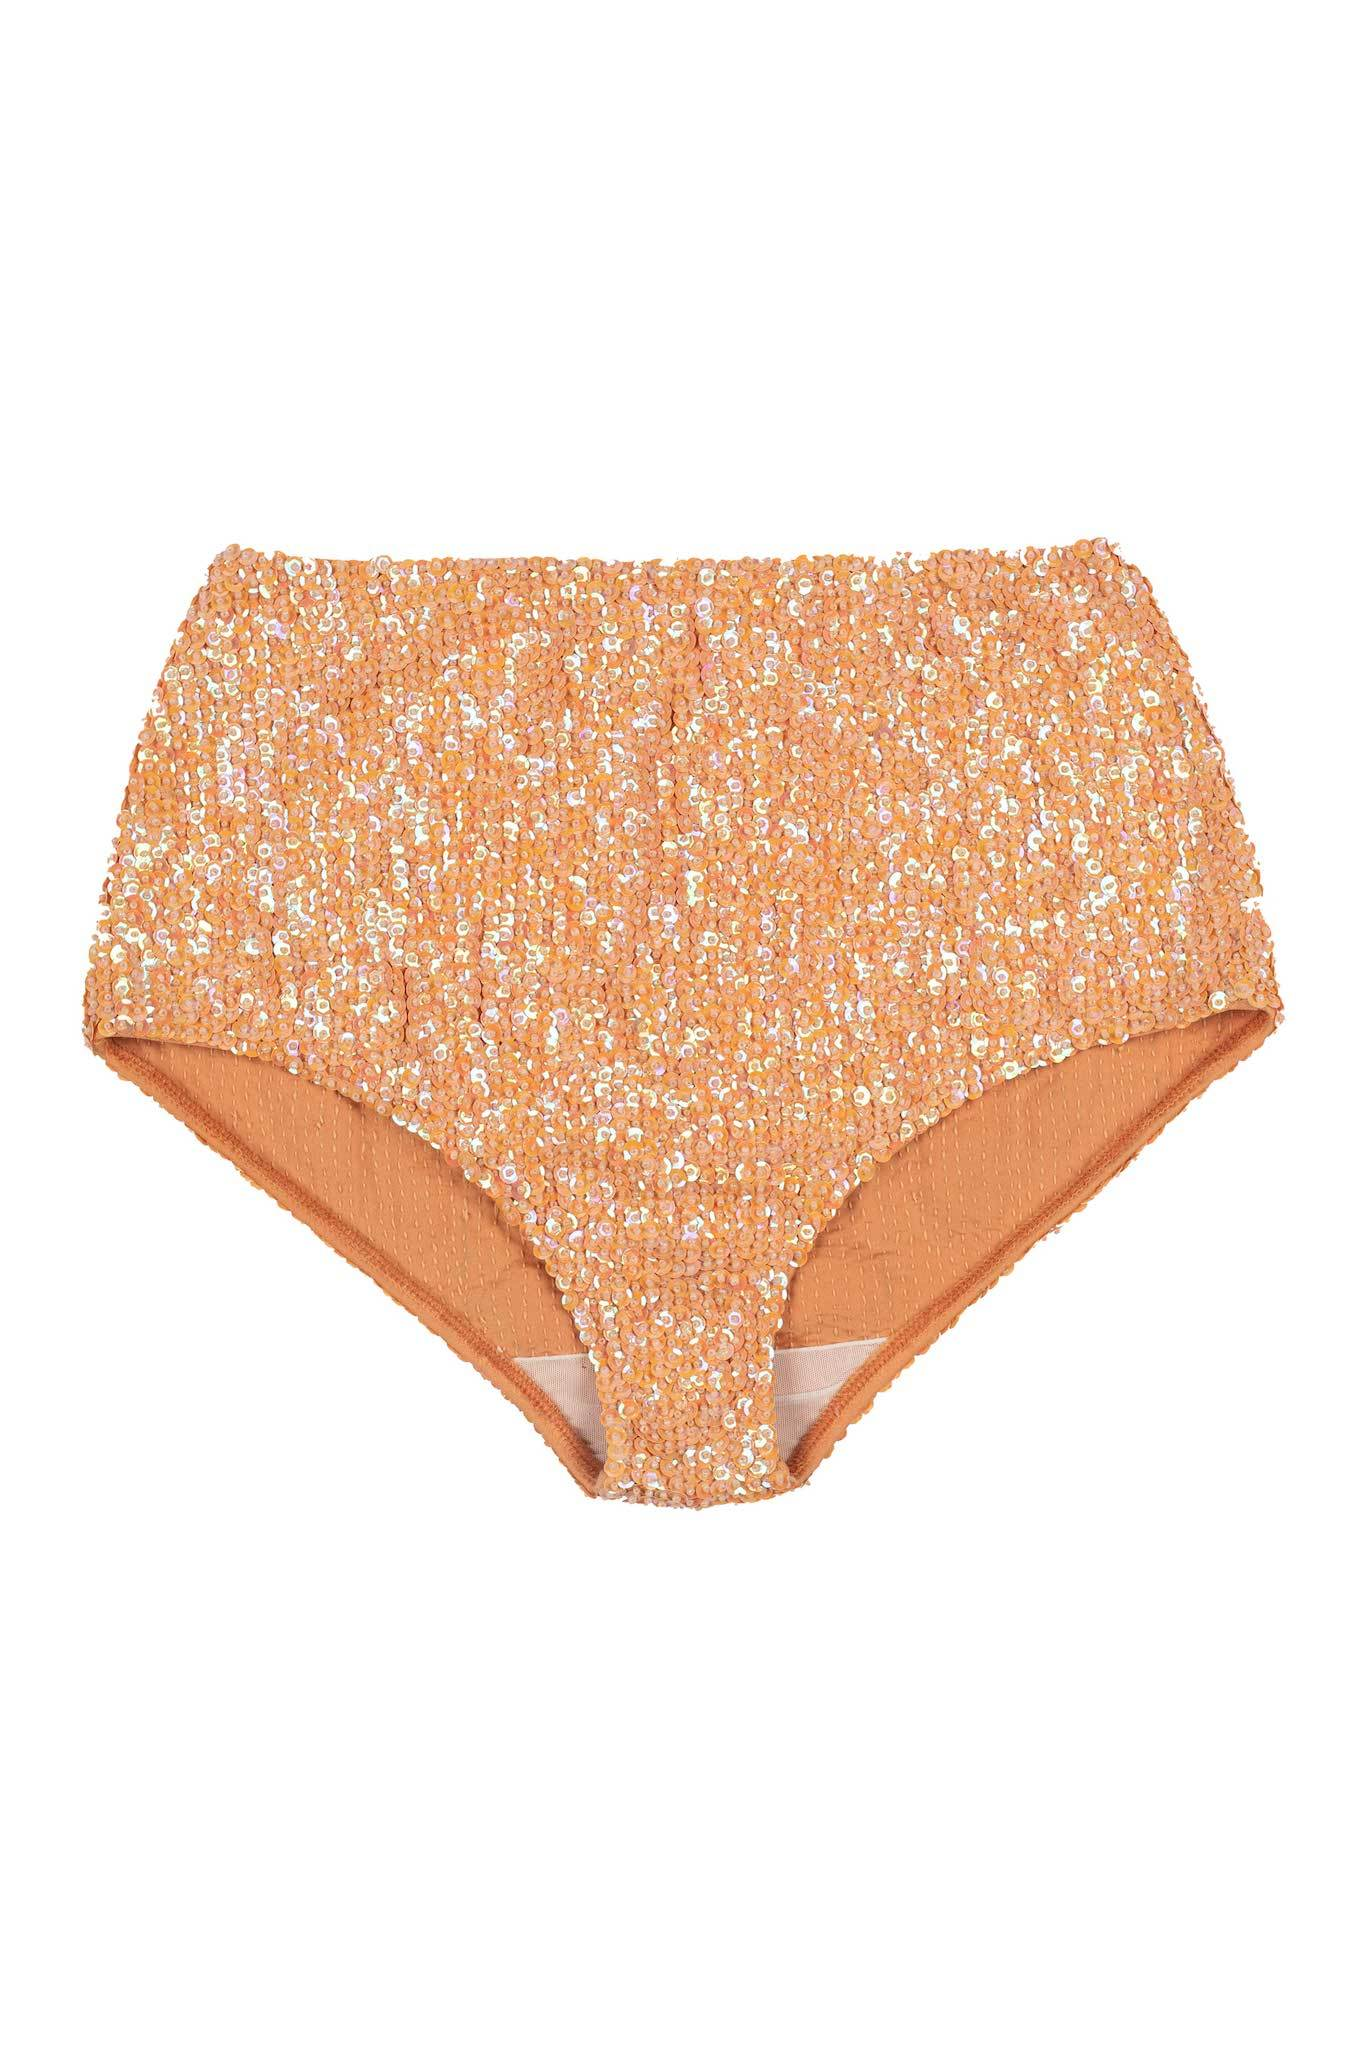 SAMPLE Bikini Bottoms